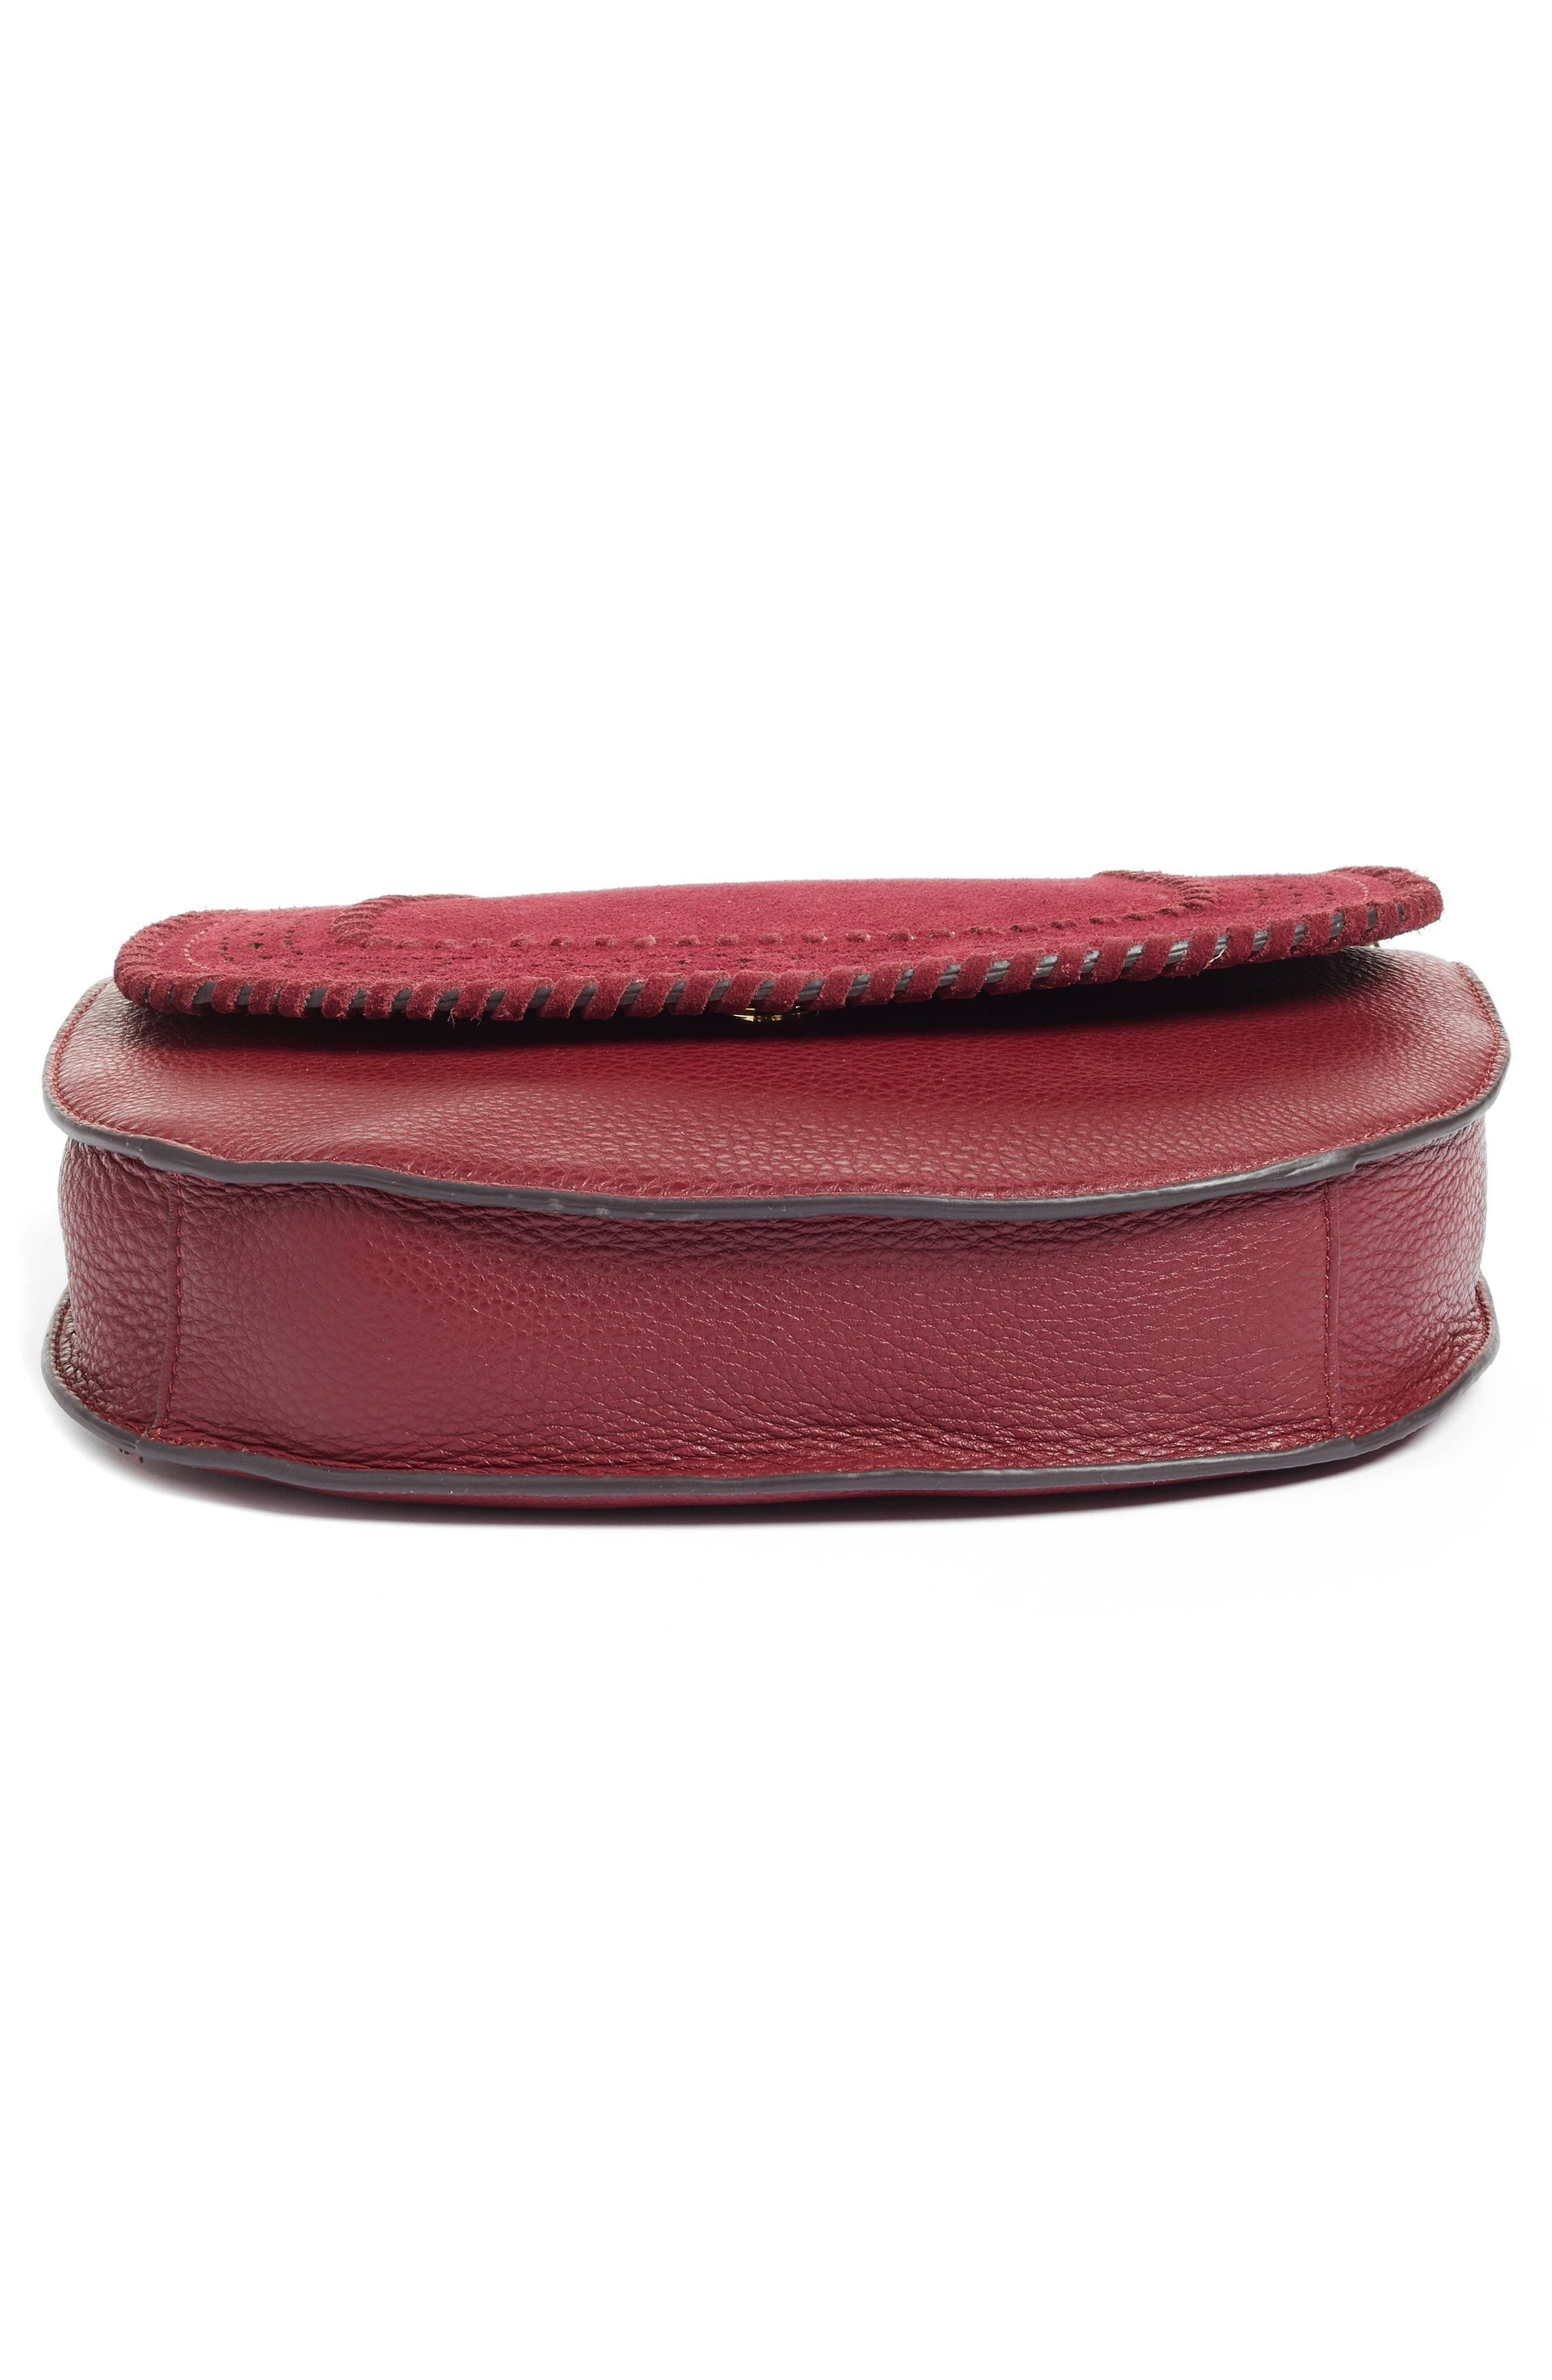 Alternate Image 6  - Vince Camuto Kirie Suede & Leather Crossbody Saddle Bag (Nordstrom Exclusive)